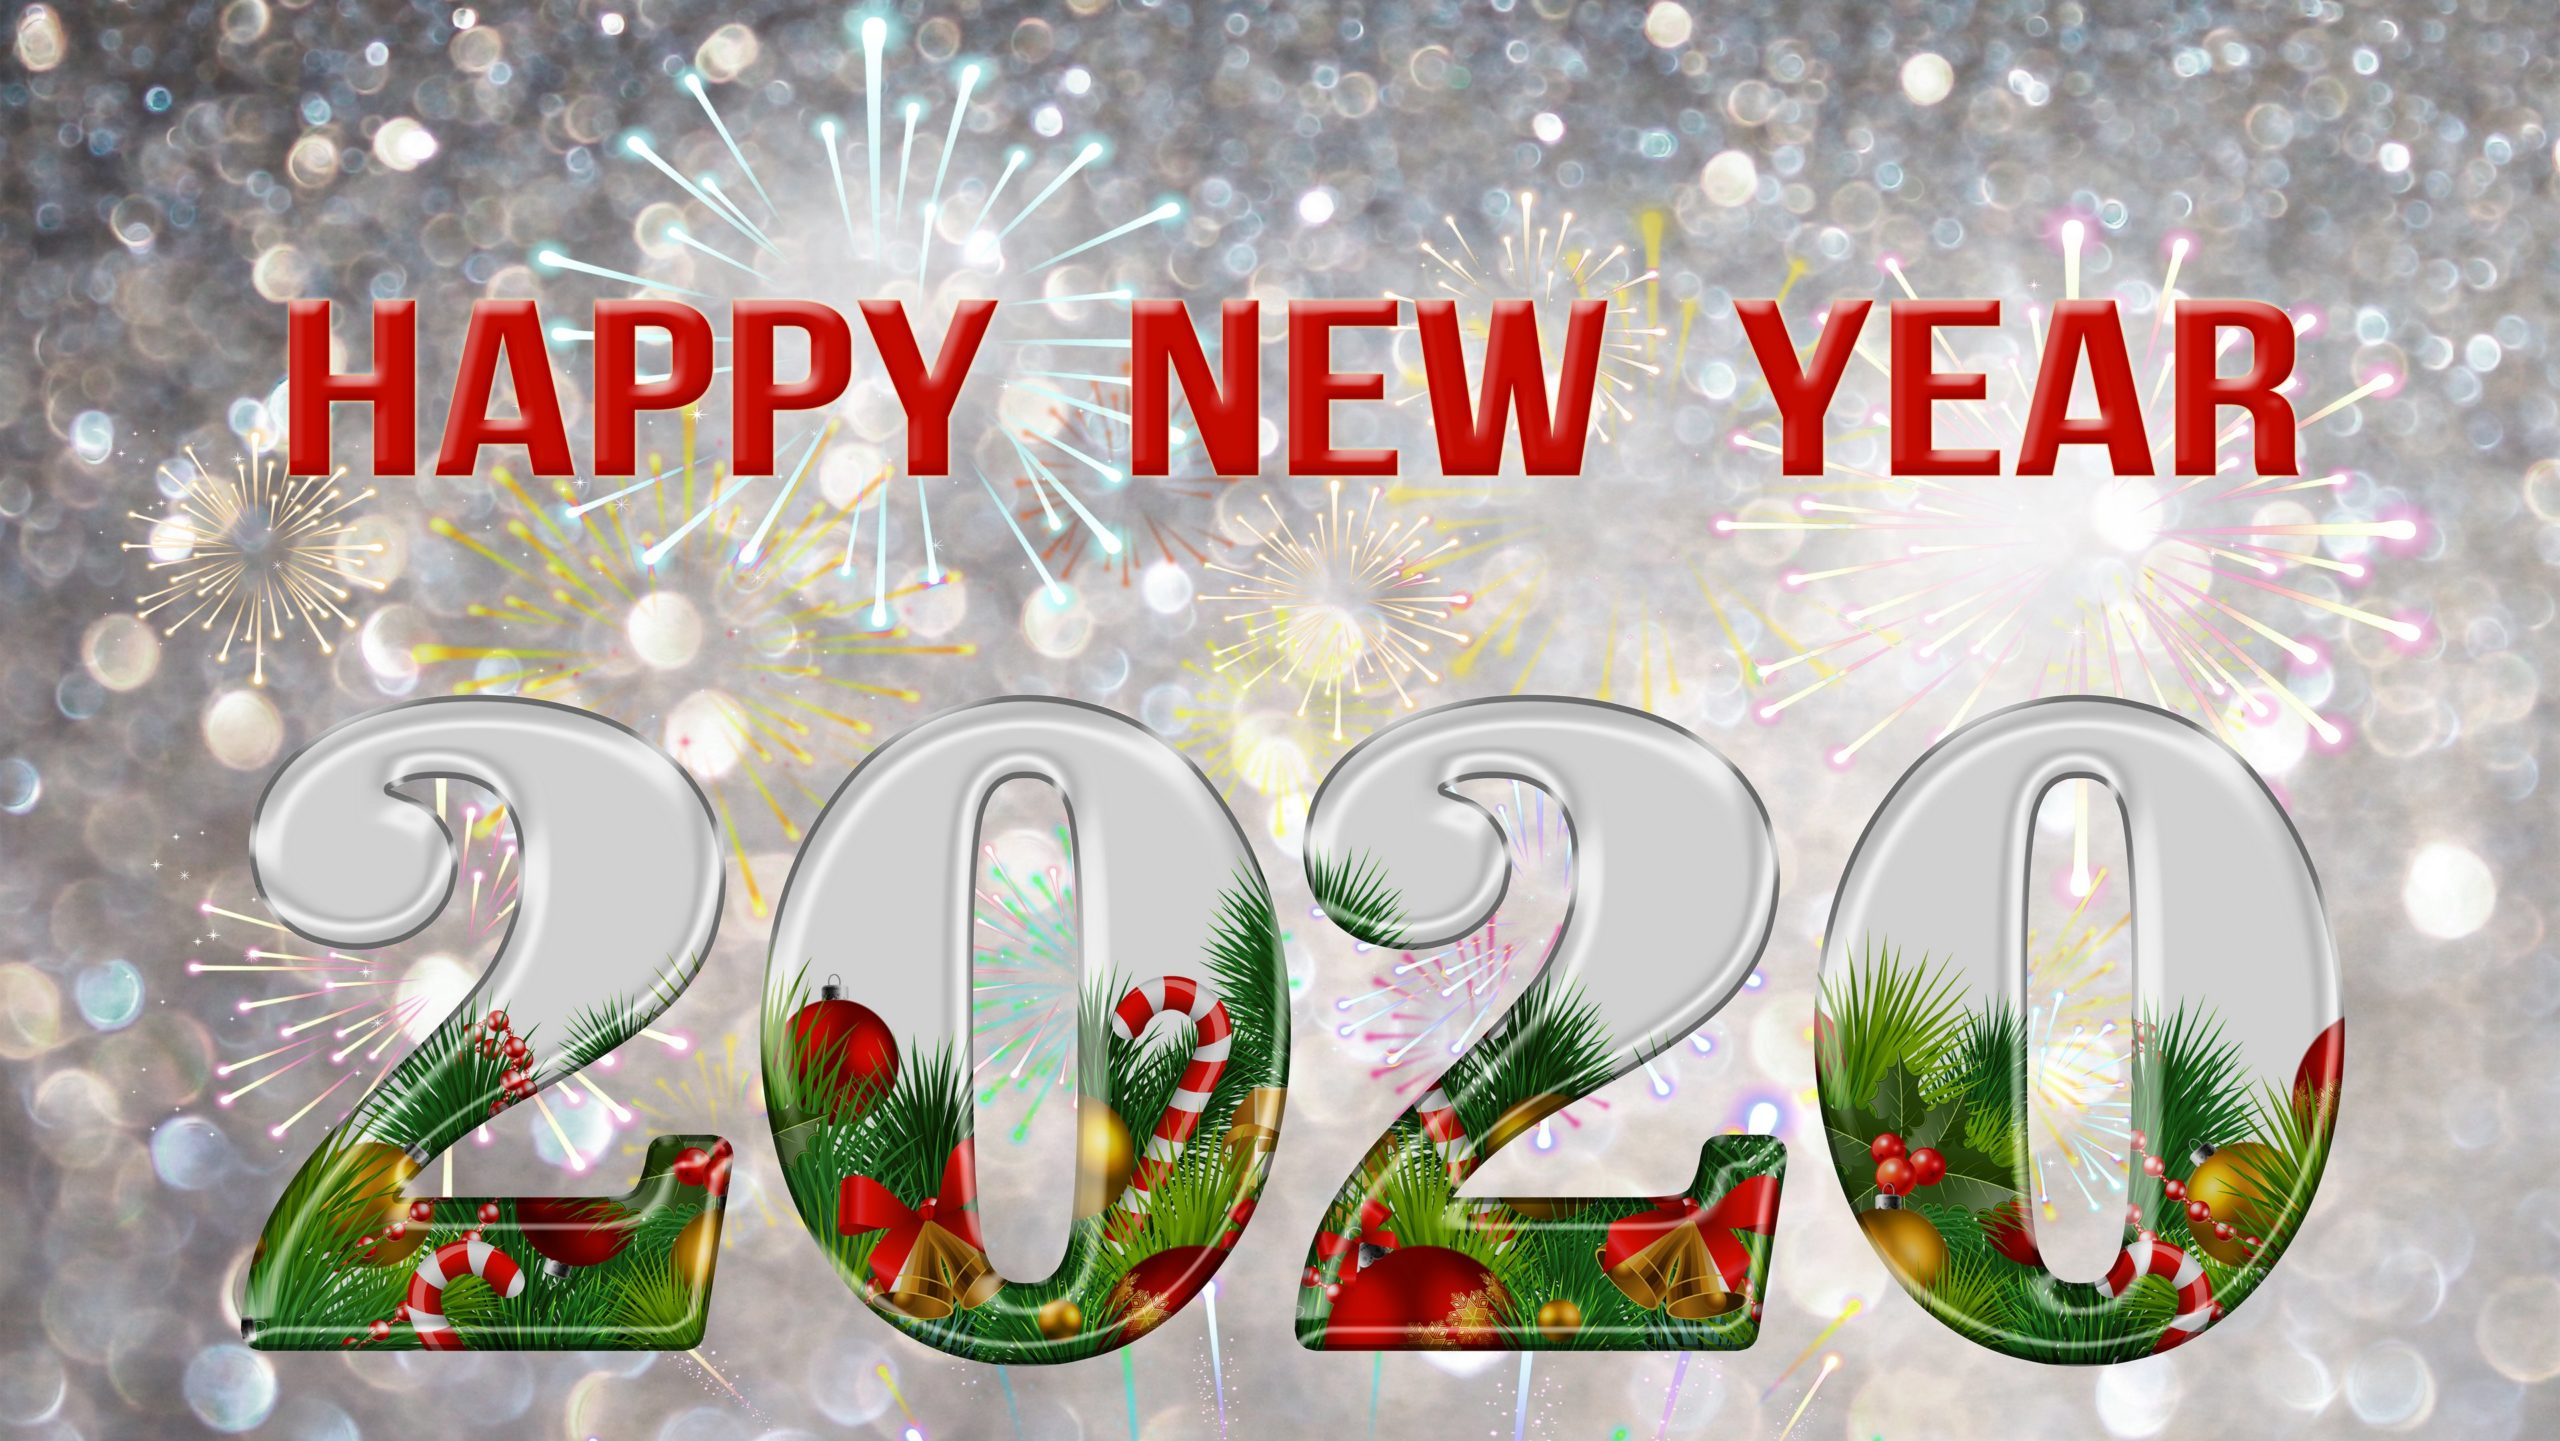 14 Fireworks Happy New Year 2020 Wallpapers High Quality Pictures 2560x1441